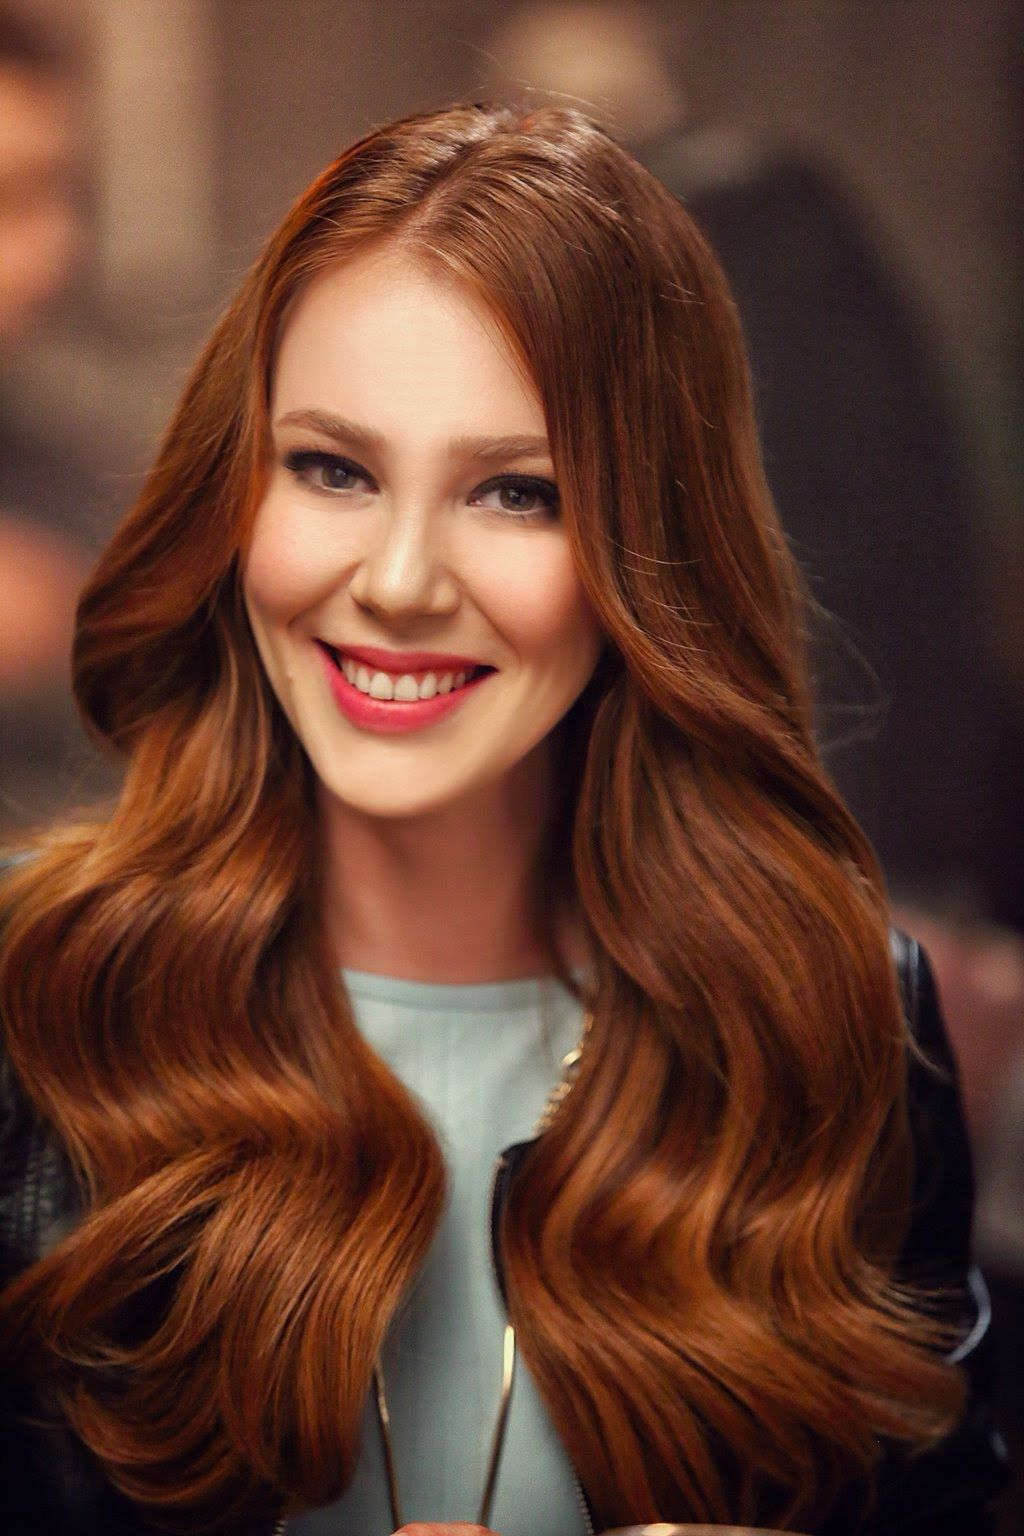 Elçin Sangu!!! She's so pretty and her acting in KA was simply perfect. Gosh and the hair!!